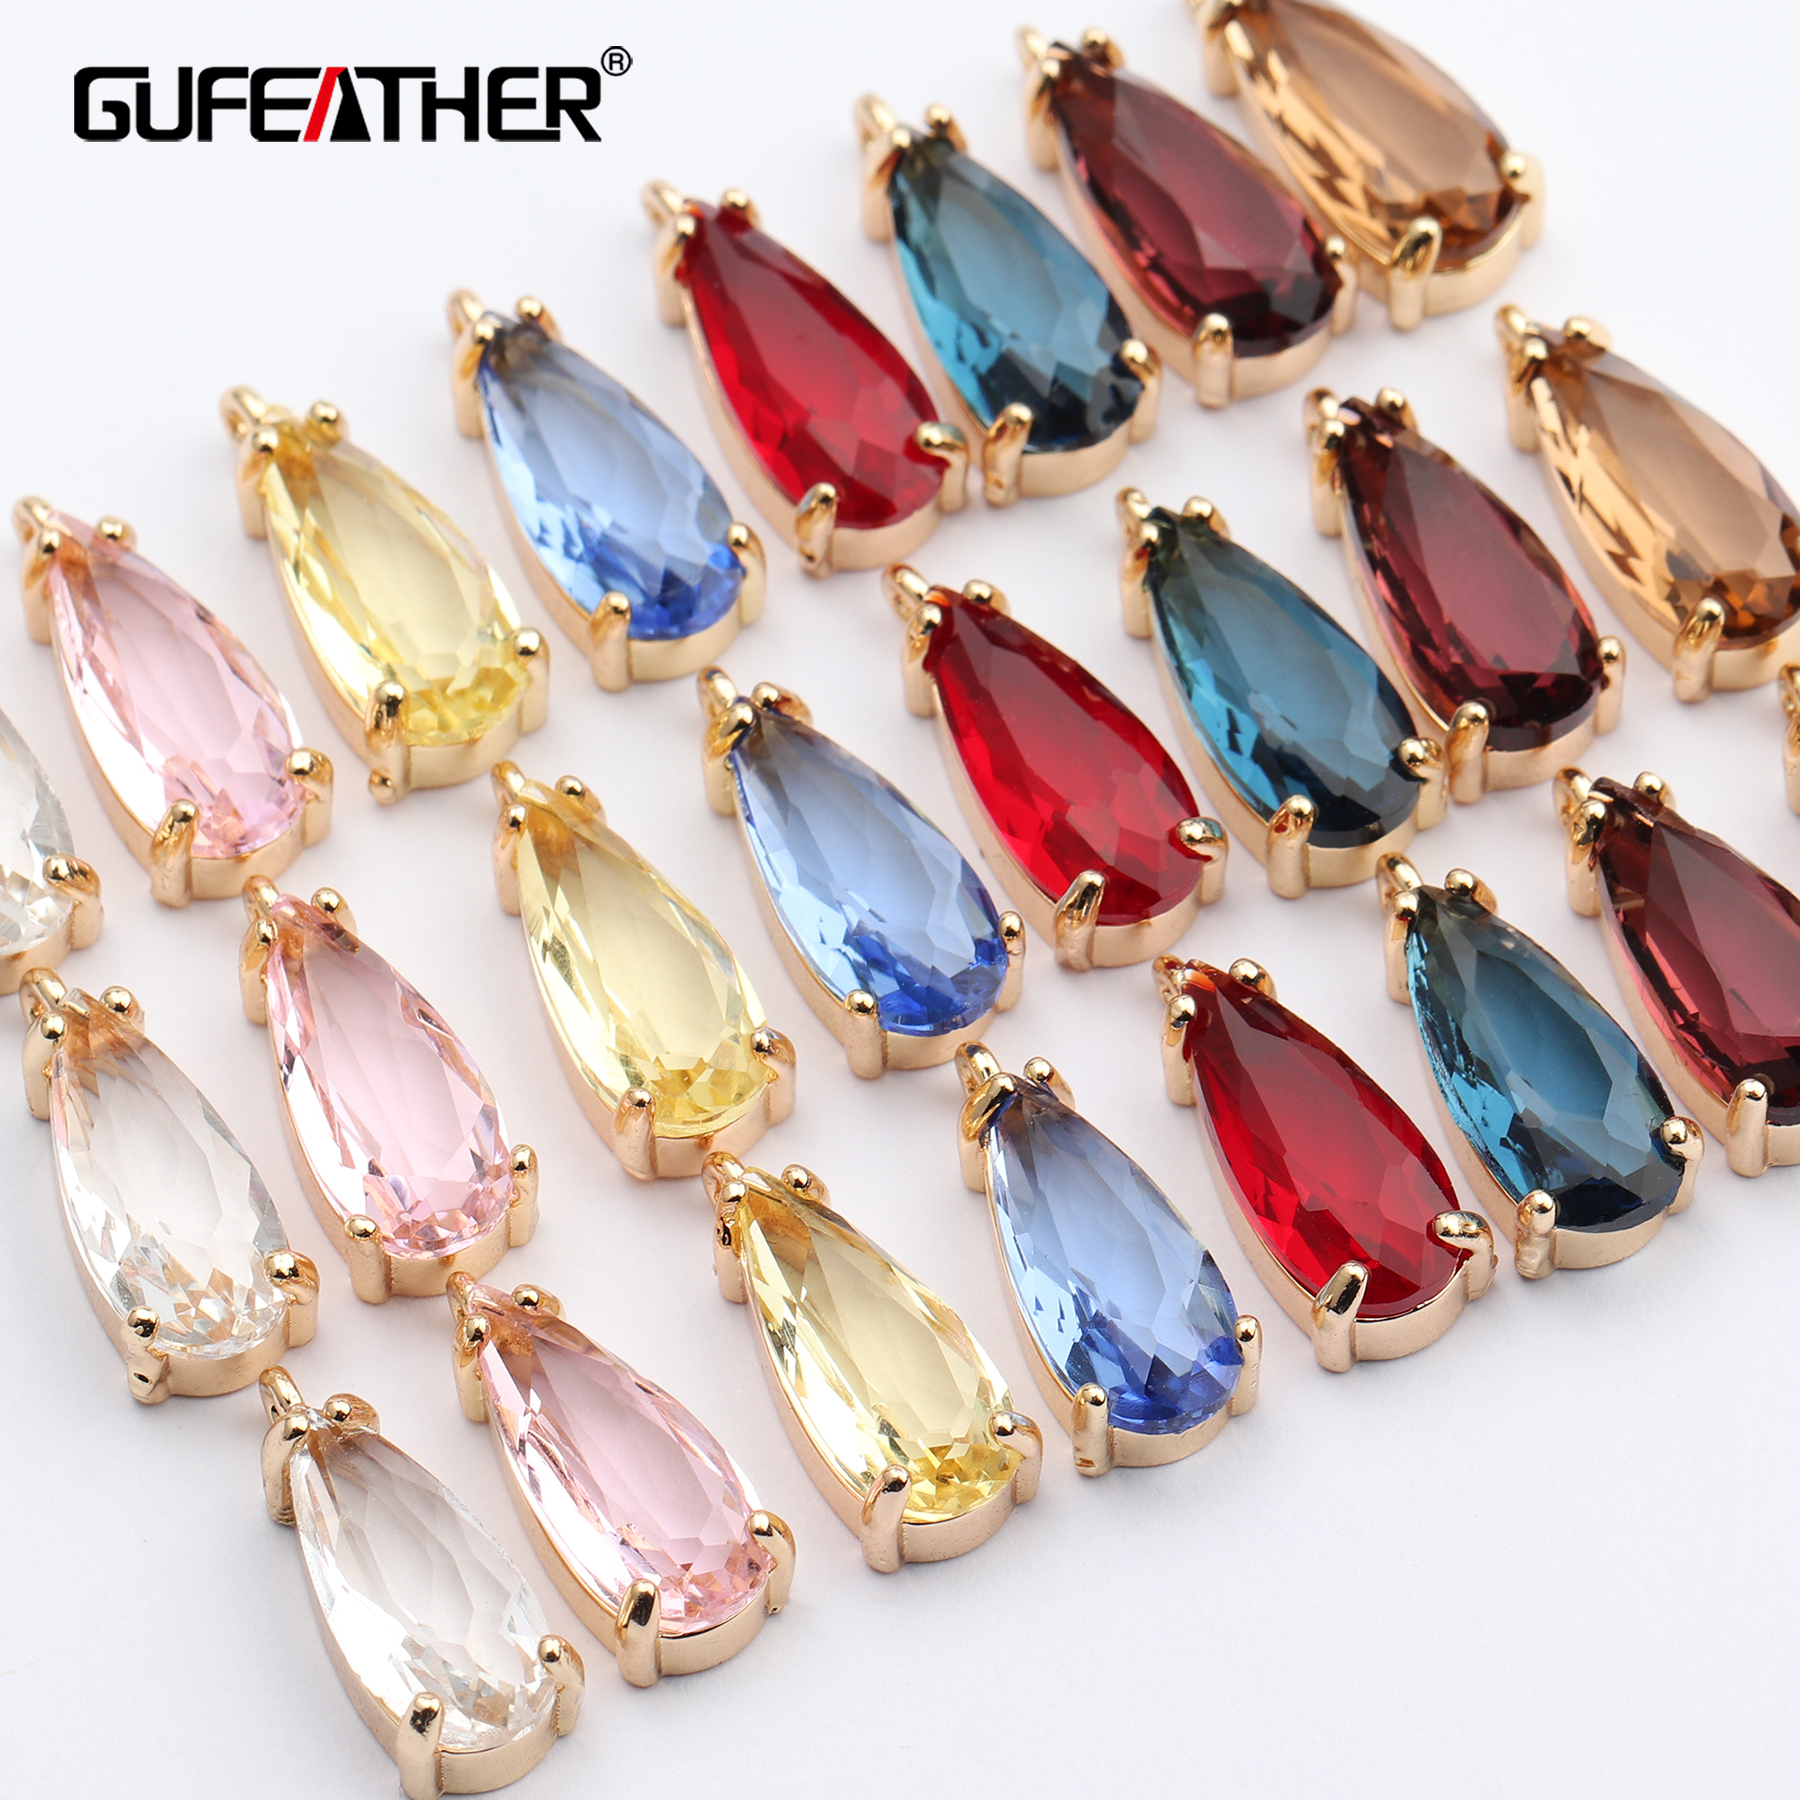 GUFEATHER M627,jewelry Accessories,hand Made,diy Glass Pendant,jump Ring,jewelry Findings,diy Earring,jewelry Making,10pcs/lot